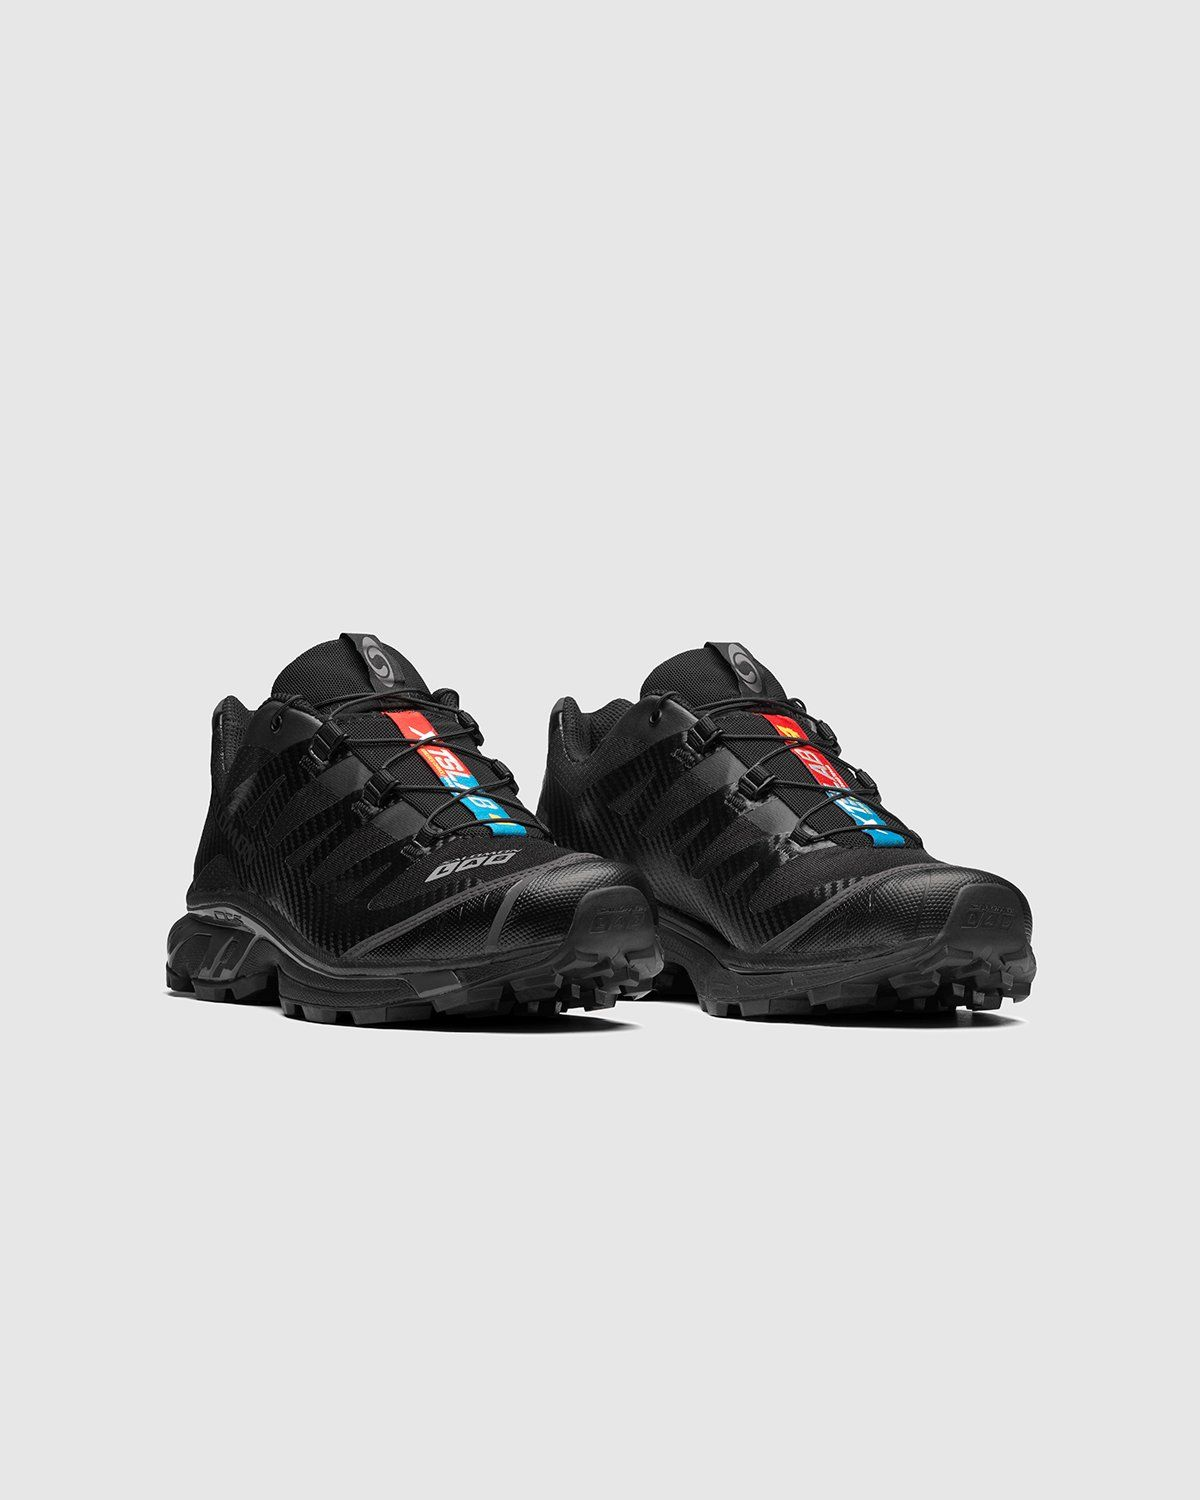 Salomon — XT-4 ADVANCED Black/Black/Magnet - Image 2